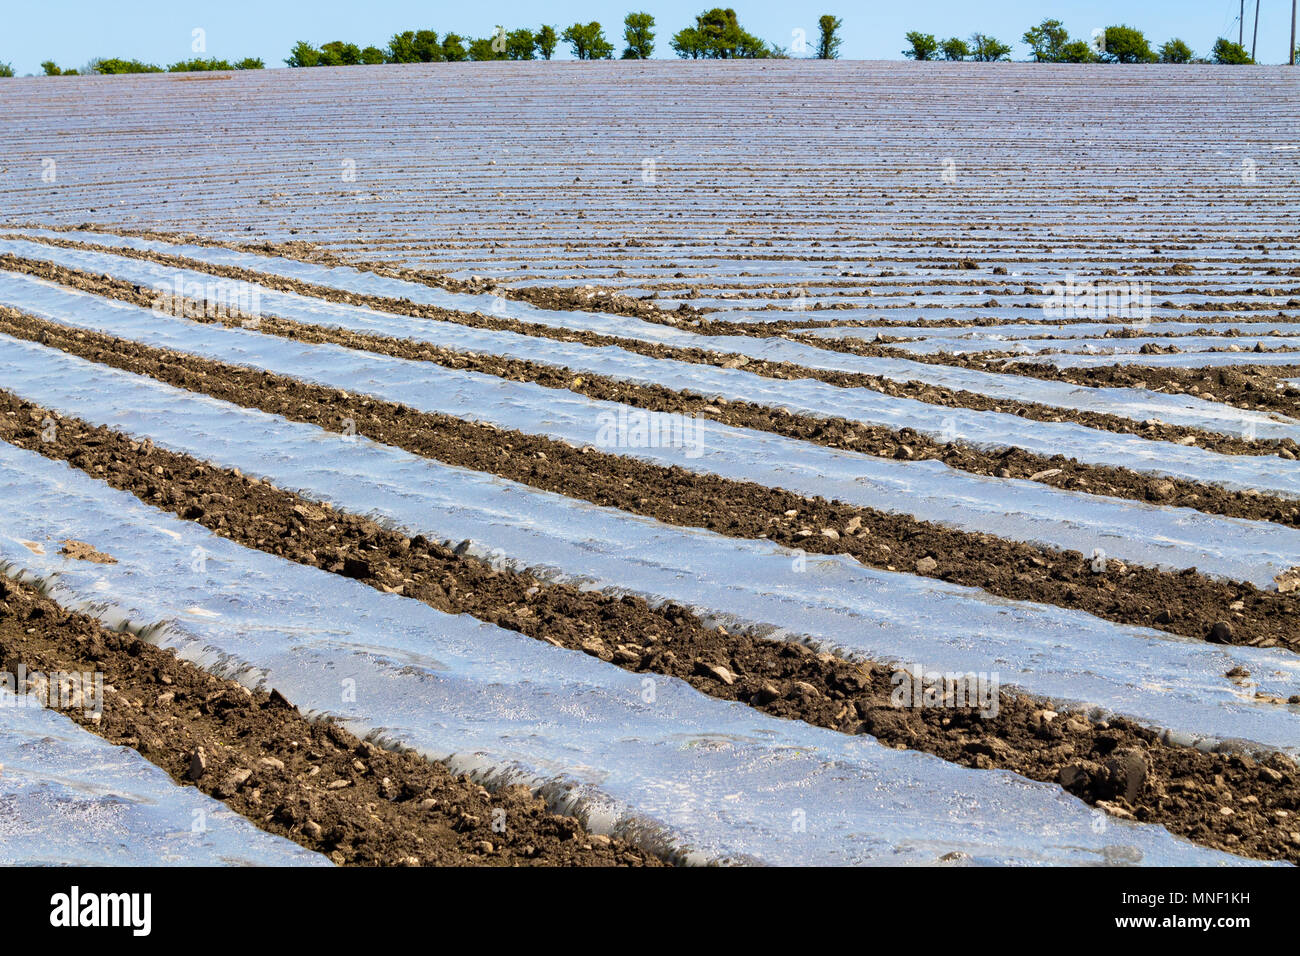 biodegradable-plastic-sheeting-strips-covering-the-ground-to-warm-it-and-act-as-frost-protection-for-the-maize-crop-on-a-farm-in-ireland-MNF1KH.jpg